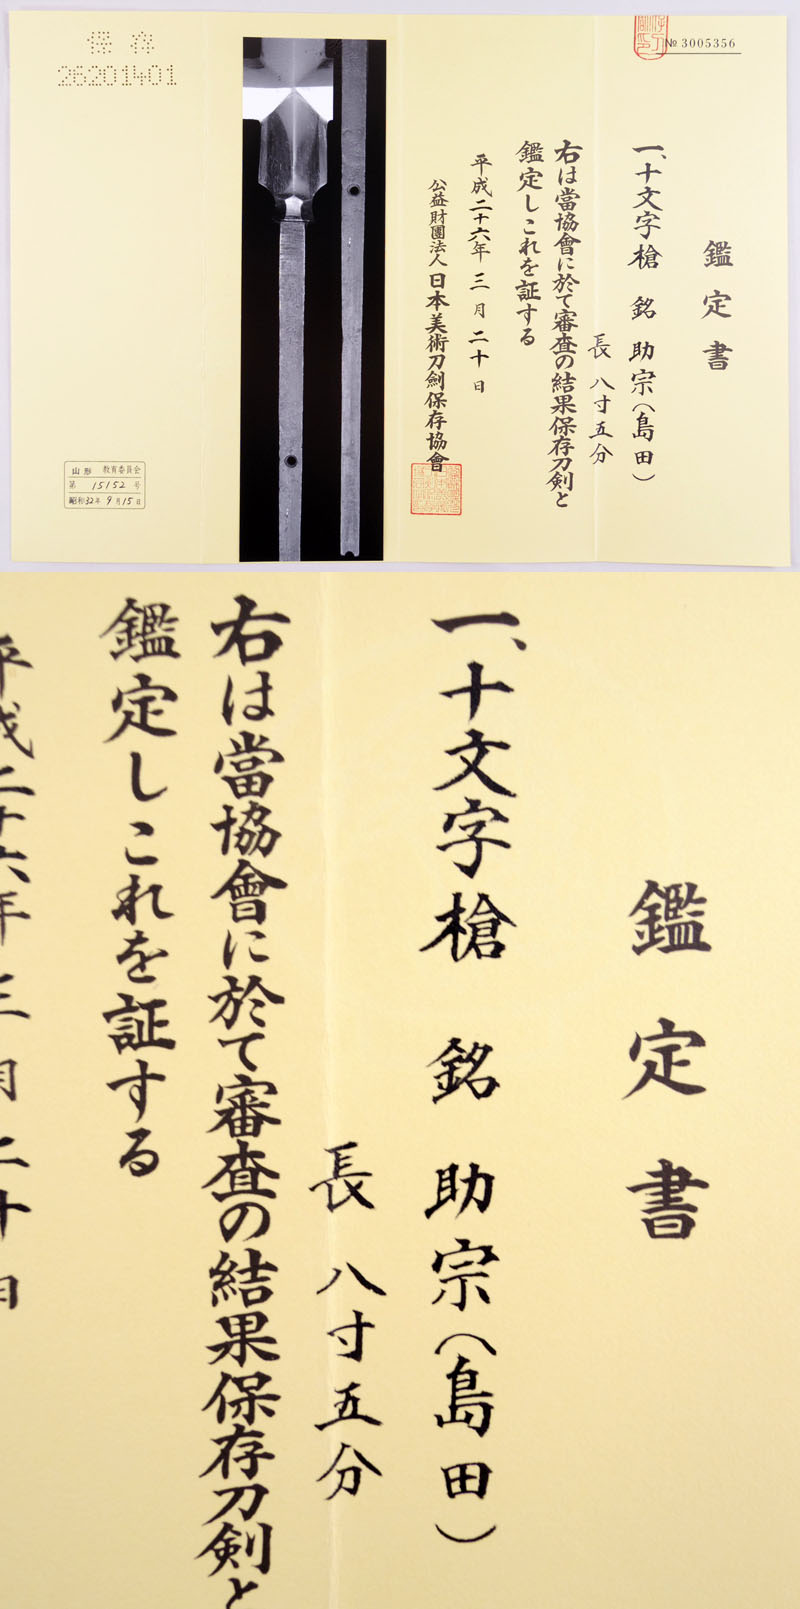 助宗(島田) Picture of Certificate